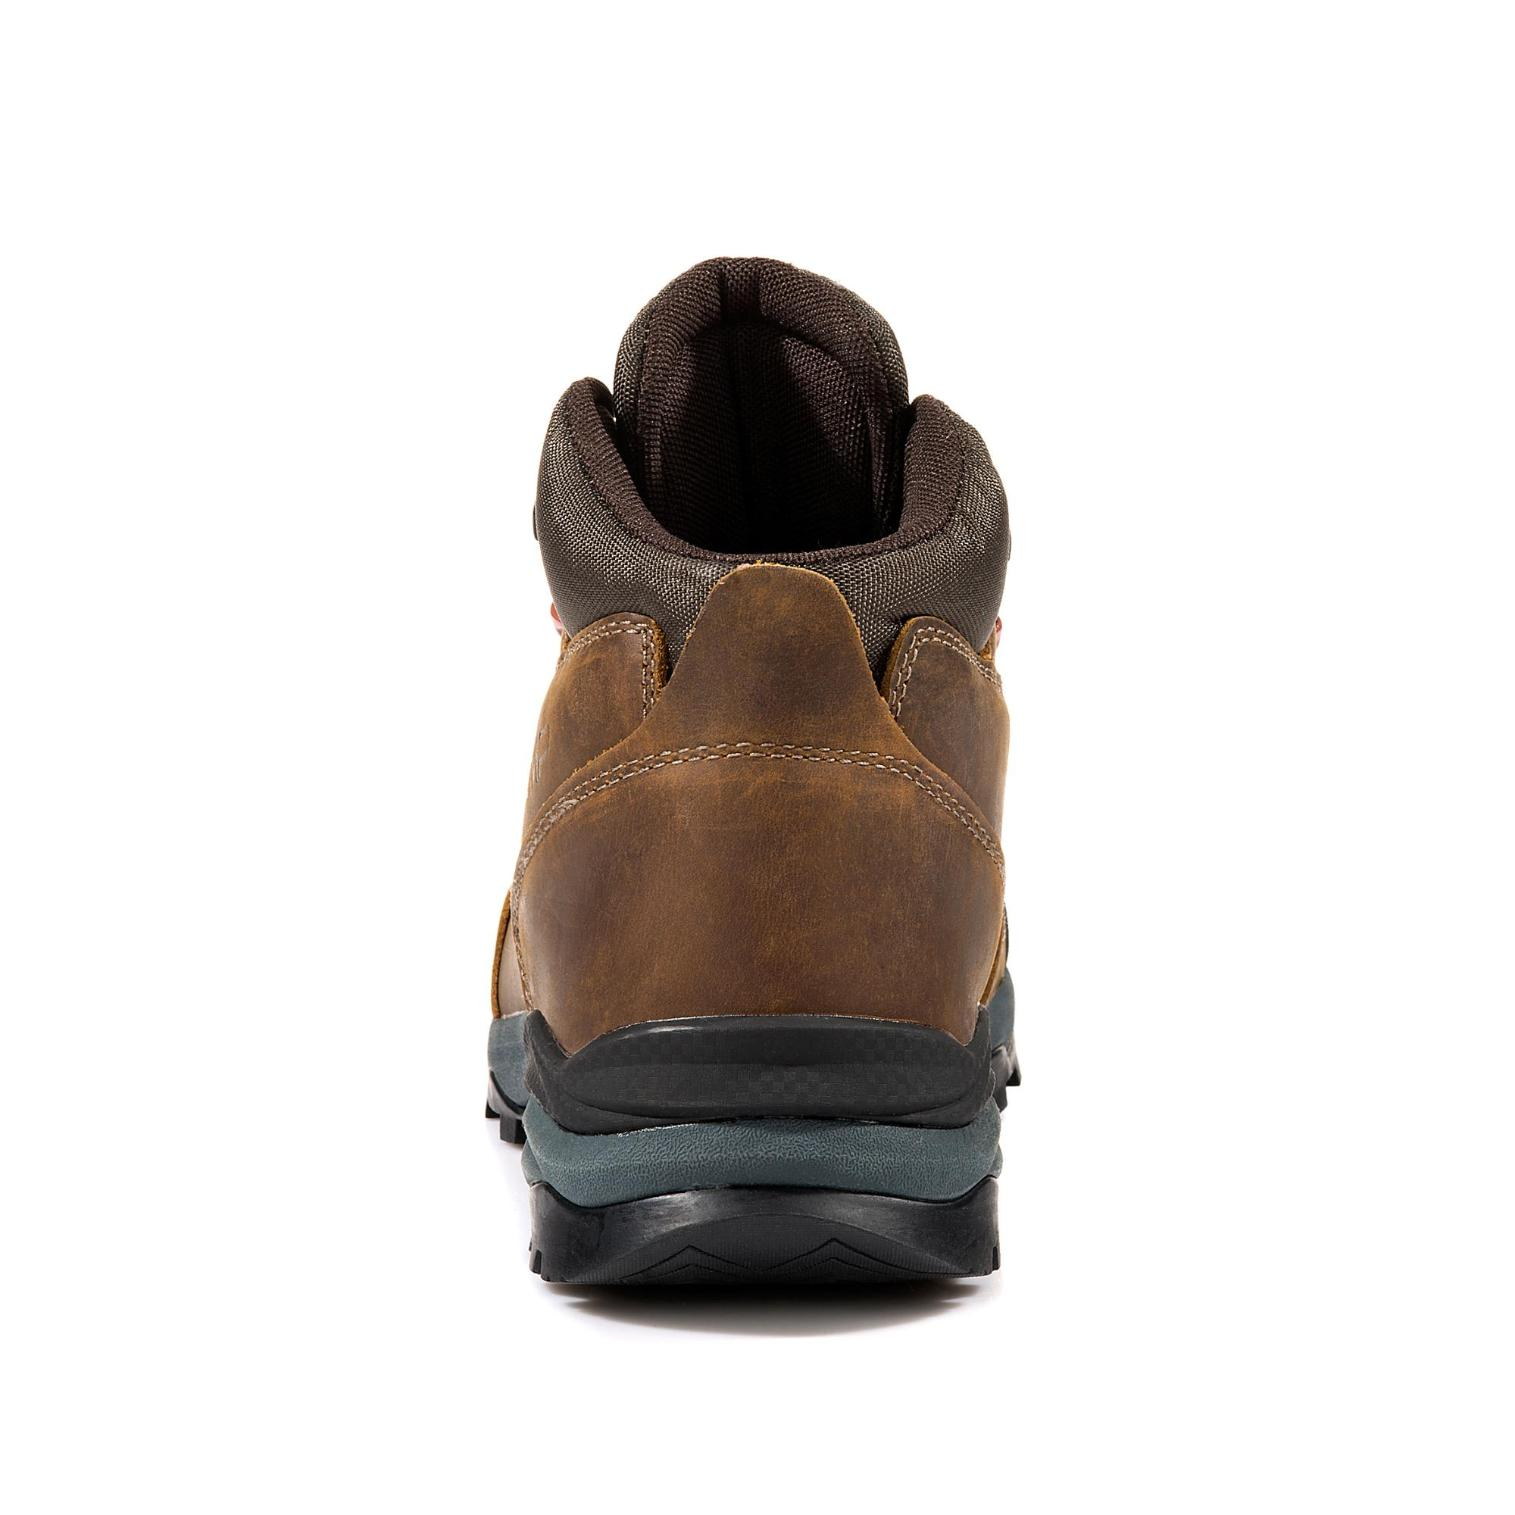 CMP Protect Mirzam Clima Protect CMP Wanderstiefel in Farbe braun c26a07